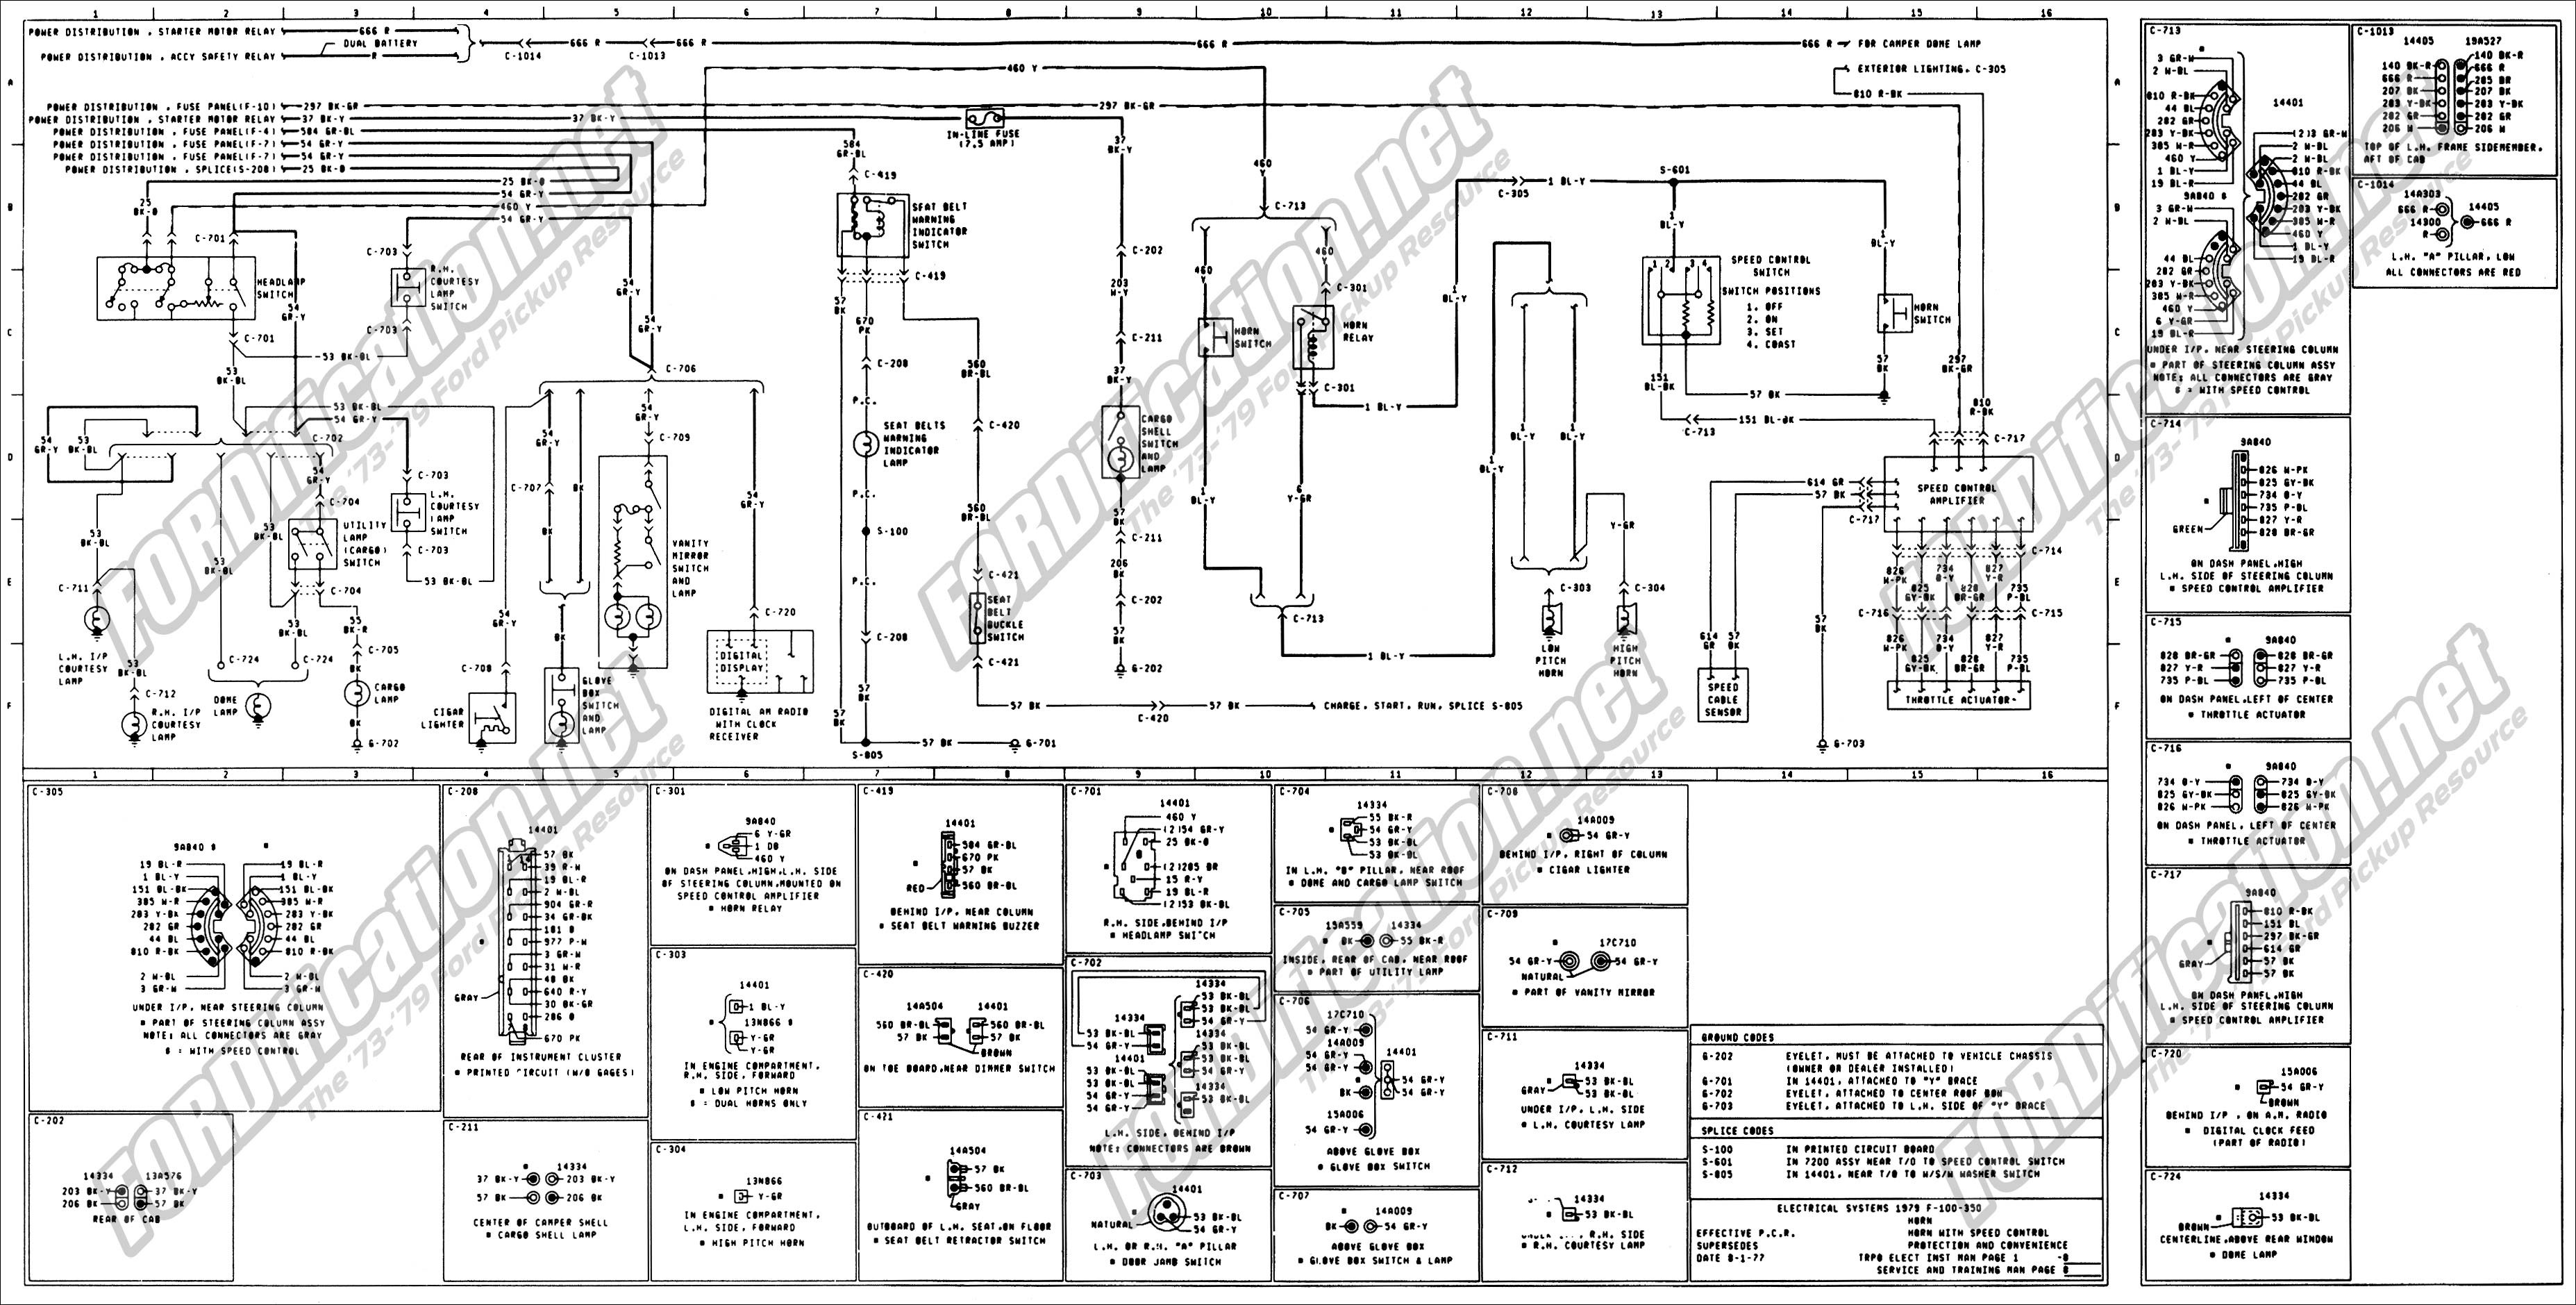 Ford Truck Wiring Diagrams Free ford F100 Wiring Diagram Wiring Diagram for Ac 1979 ford Of Ford Truck Wiring Diagrams Free